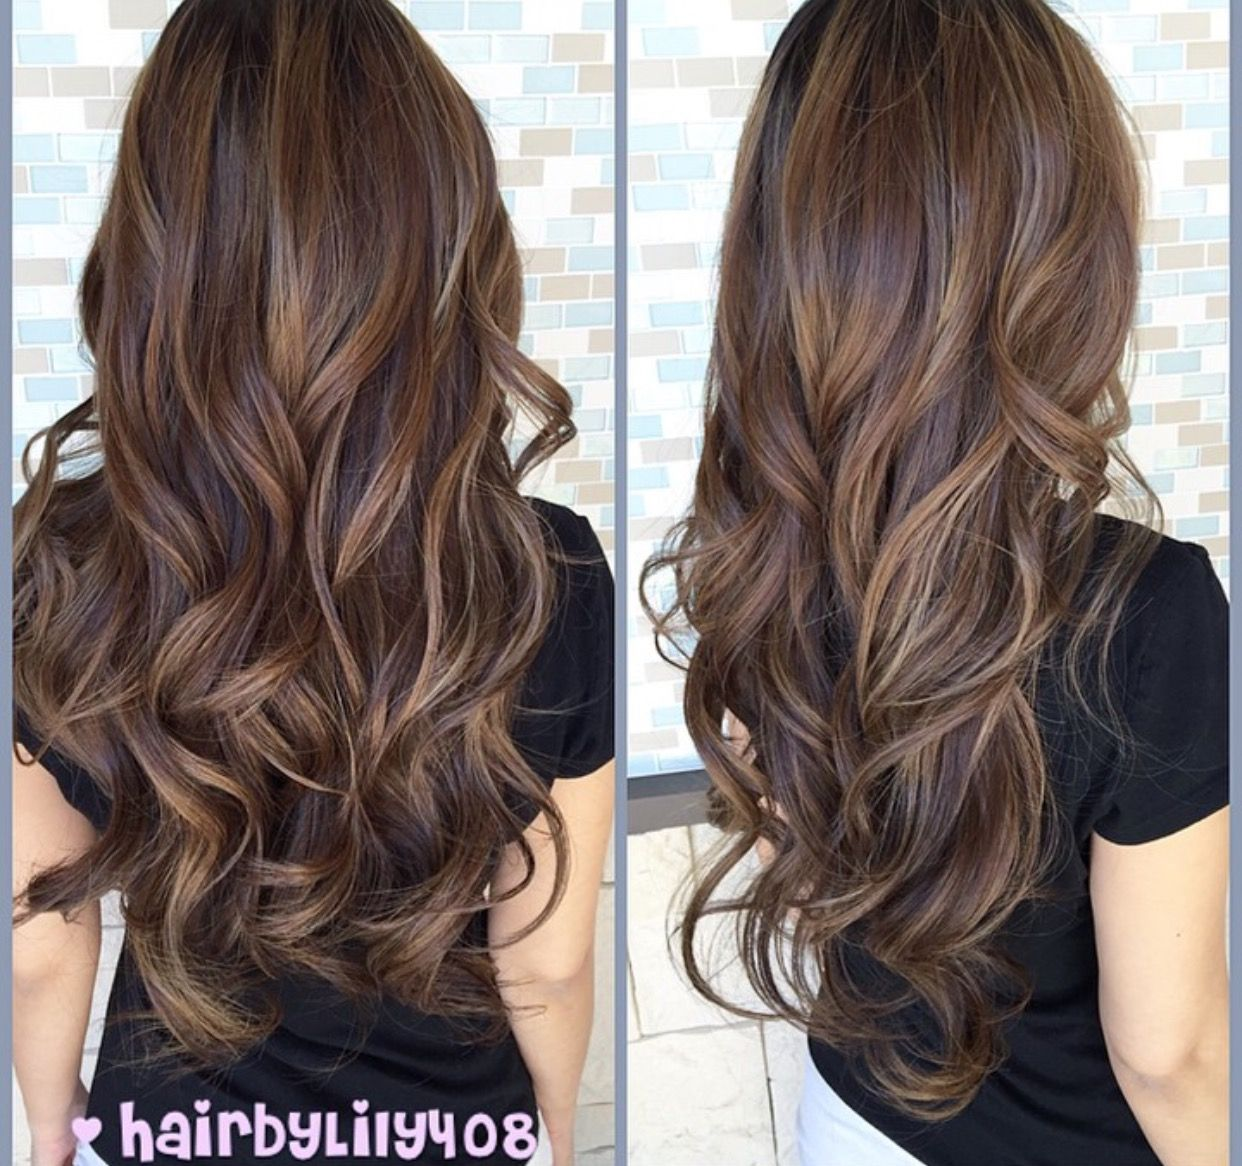 Hair Color Hair Colors Amp Hairstyles Mostly Curly